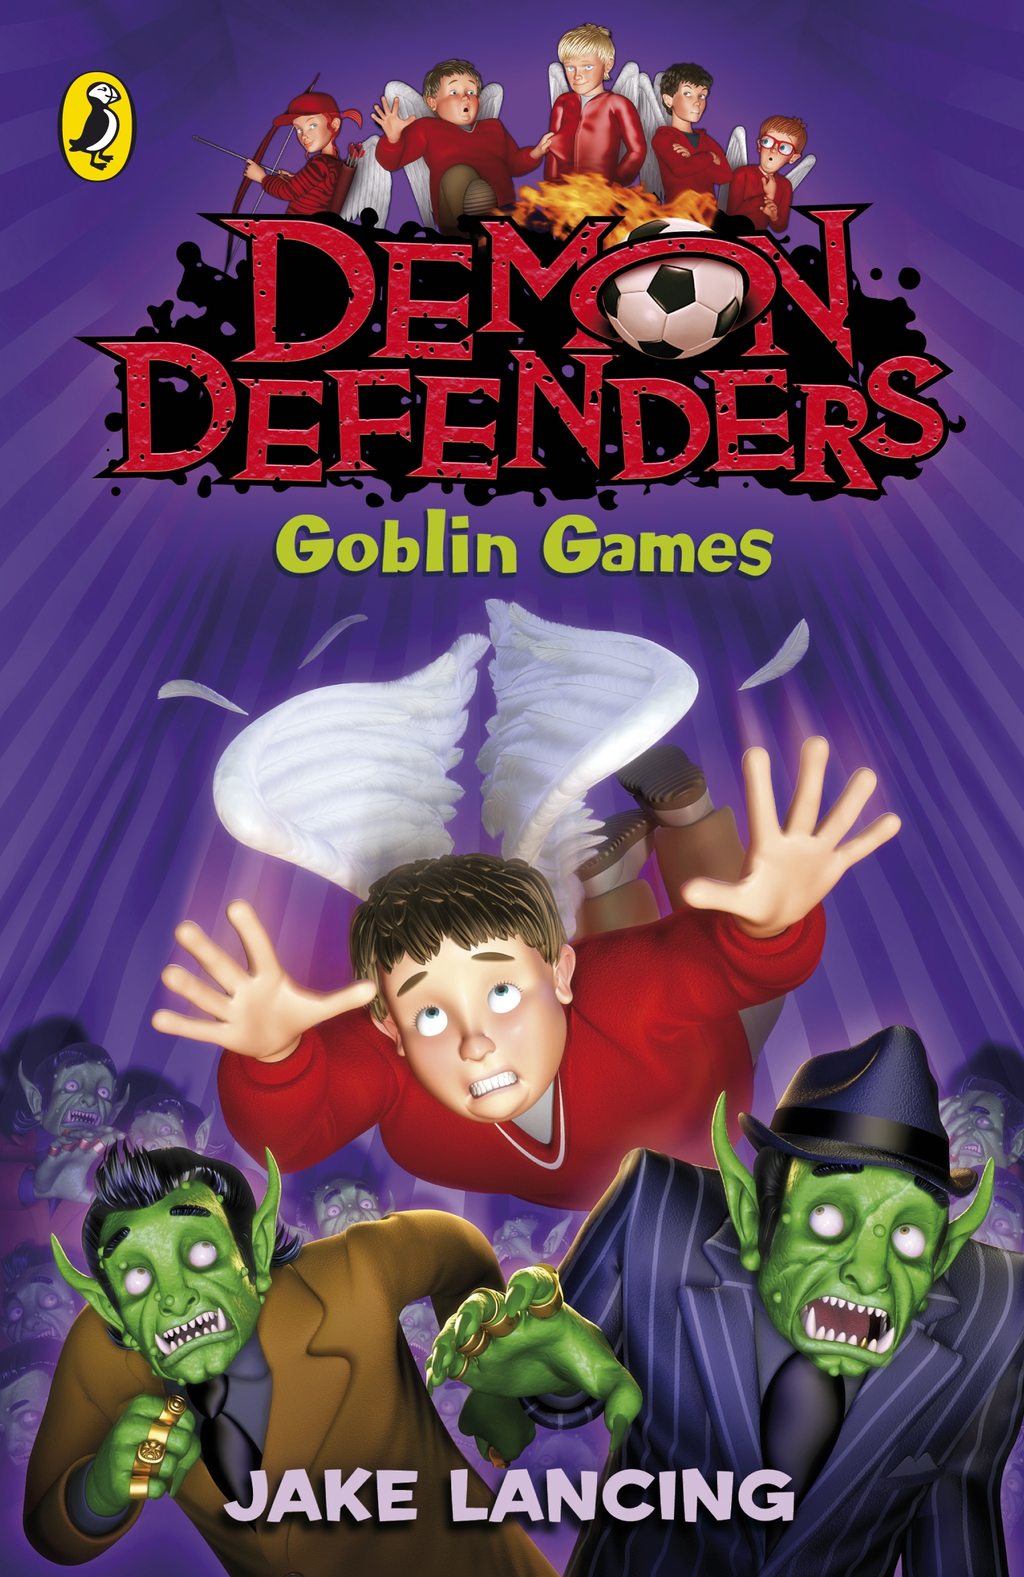 Demon Defenders: Goblin Games